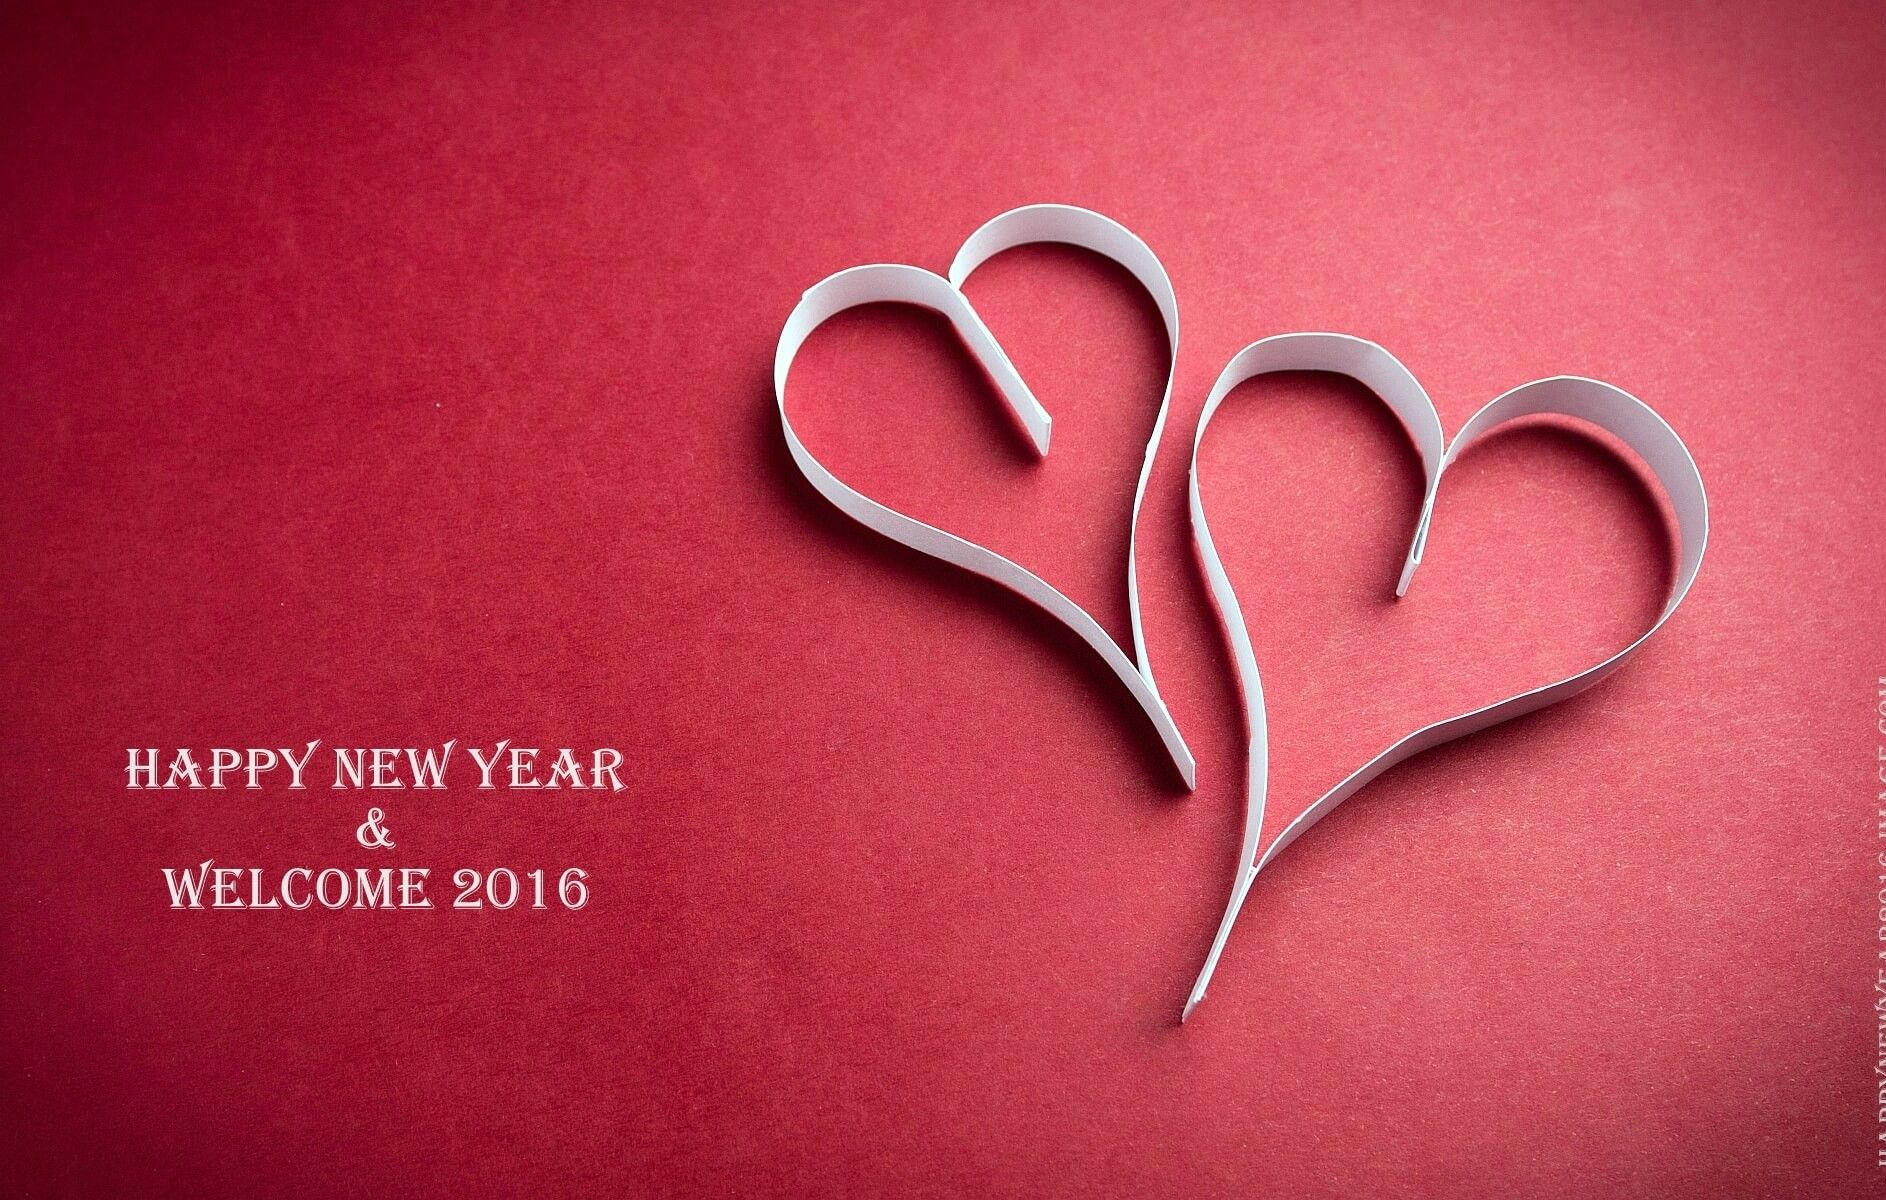 happy new year love quotes with romantic new year poems for boyfriend girlfriend romantic new year messages and new year romantic wallpapers with romantic